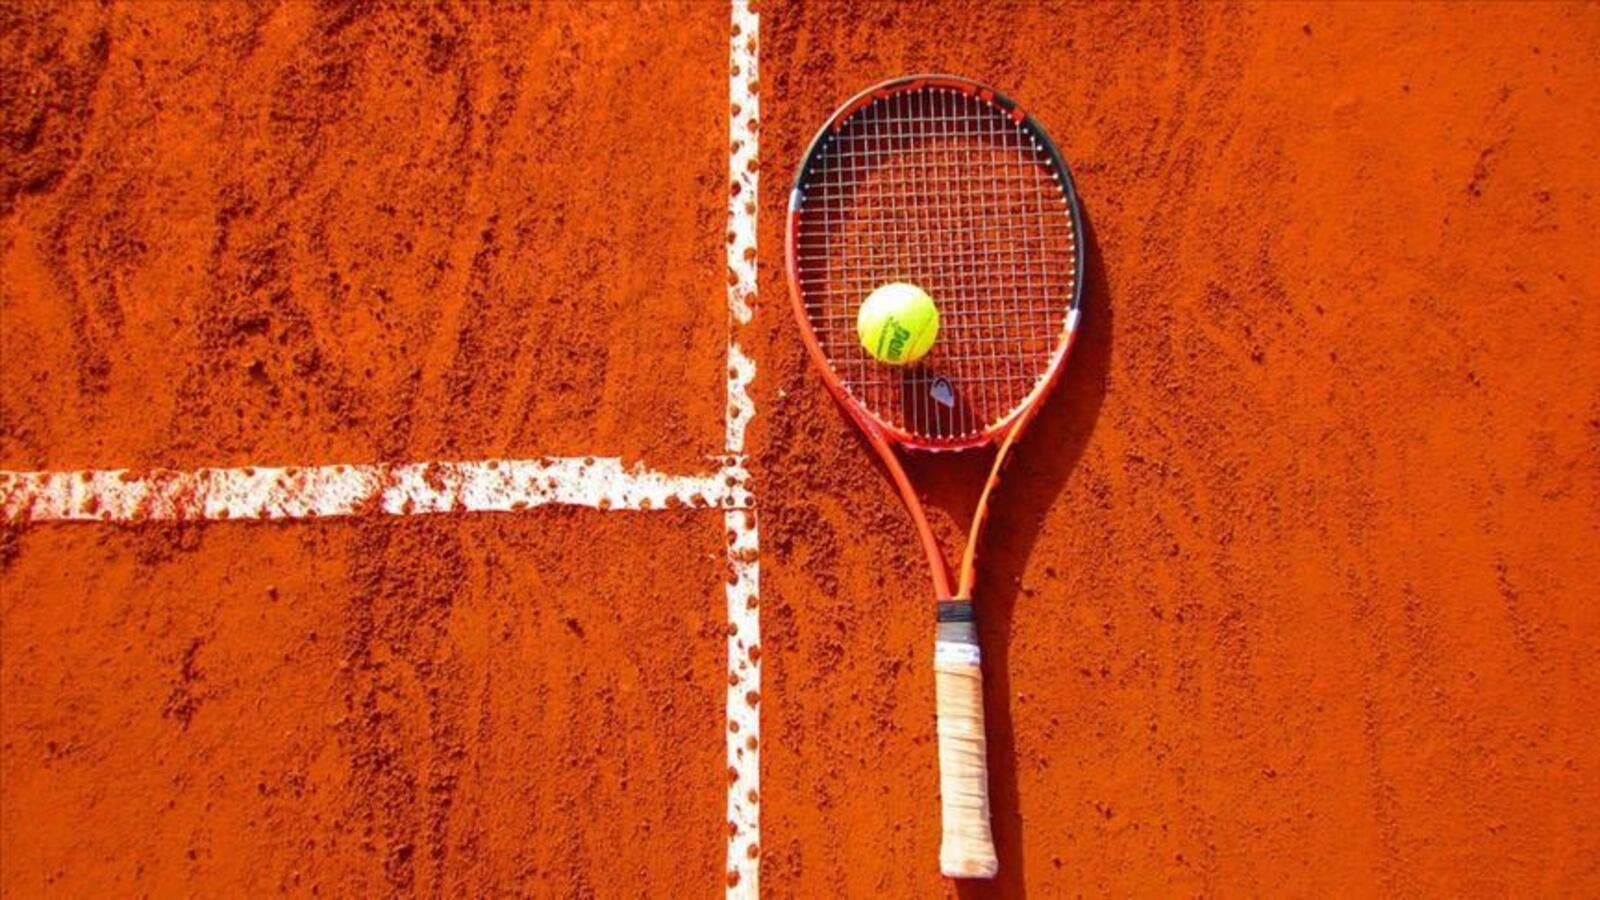 French Open postponed another week, widens gap with US Open